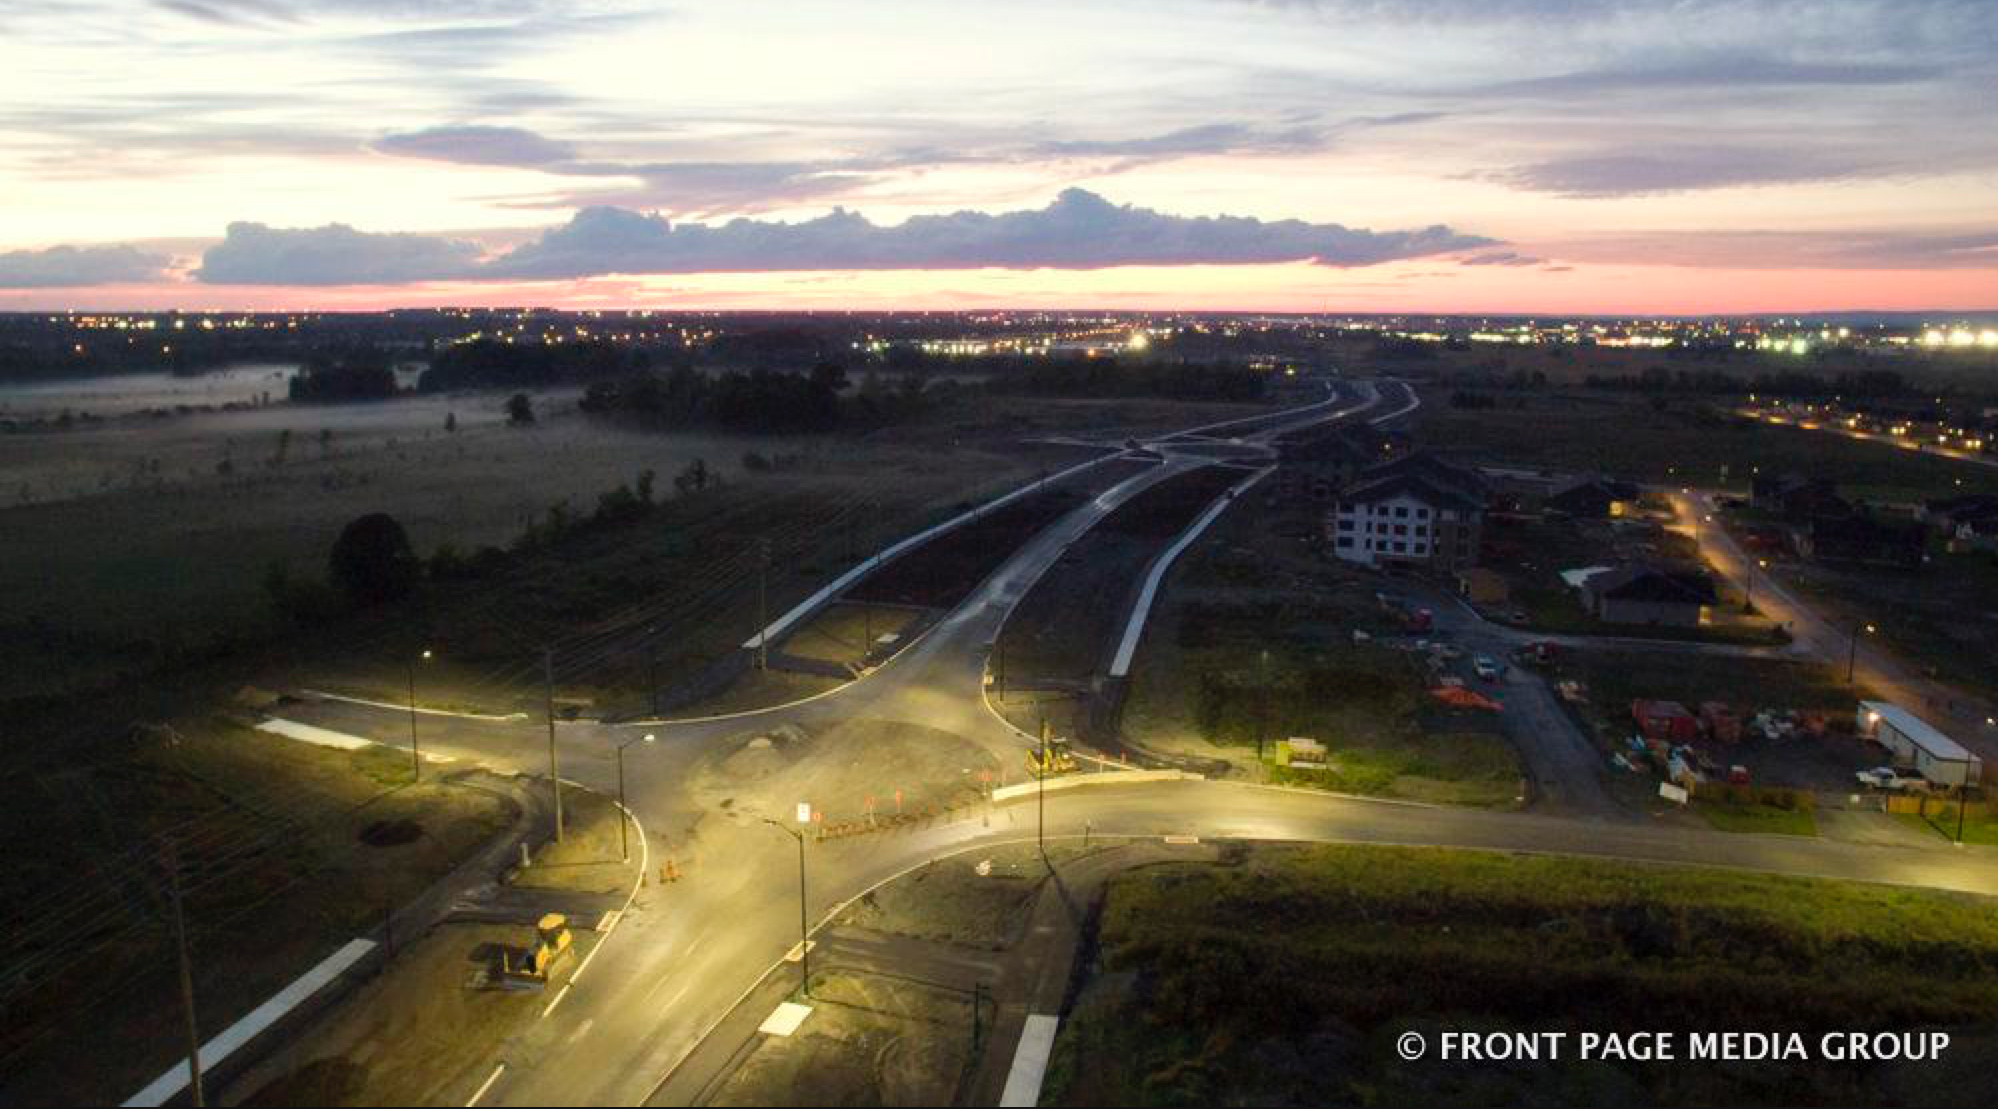 Stittsville aerial sunset. Photo by Front Page Media Group